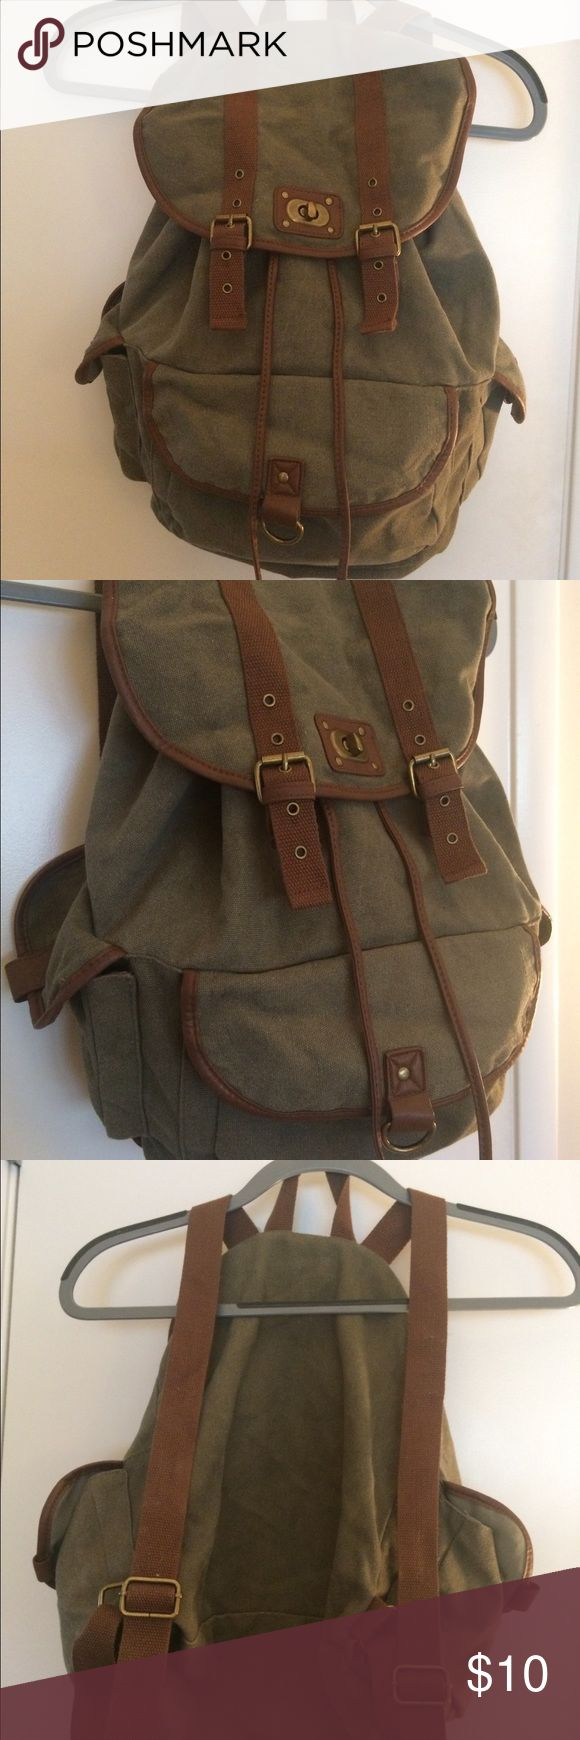 Army green backpack Tie close, 3 pockets, army green and brown straps Mossimo Supply Co. Bags Backpacks